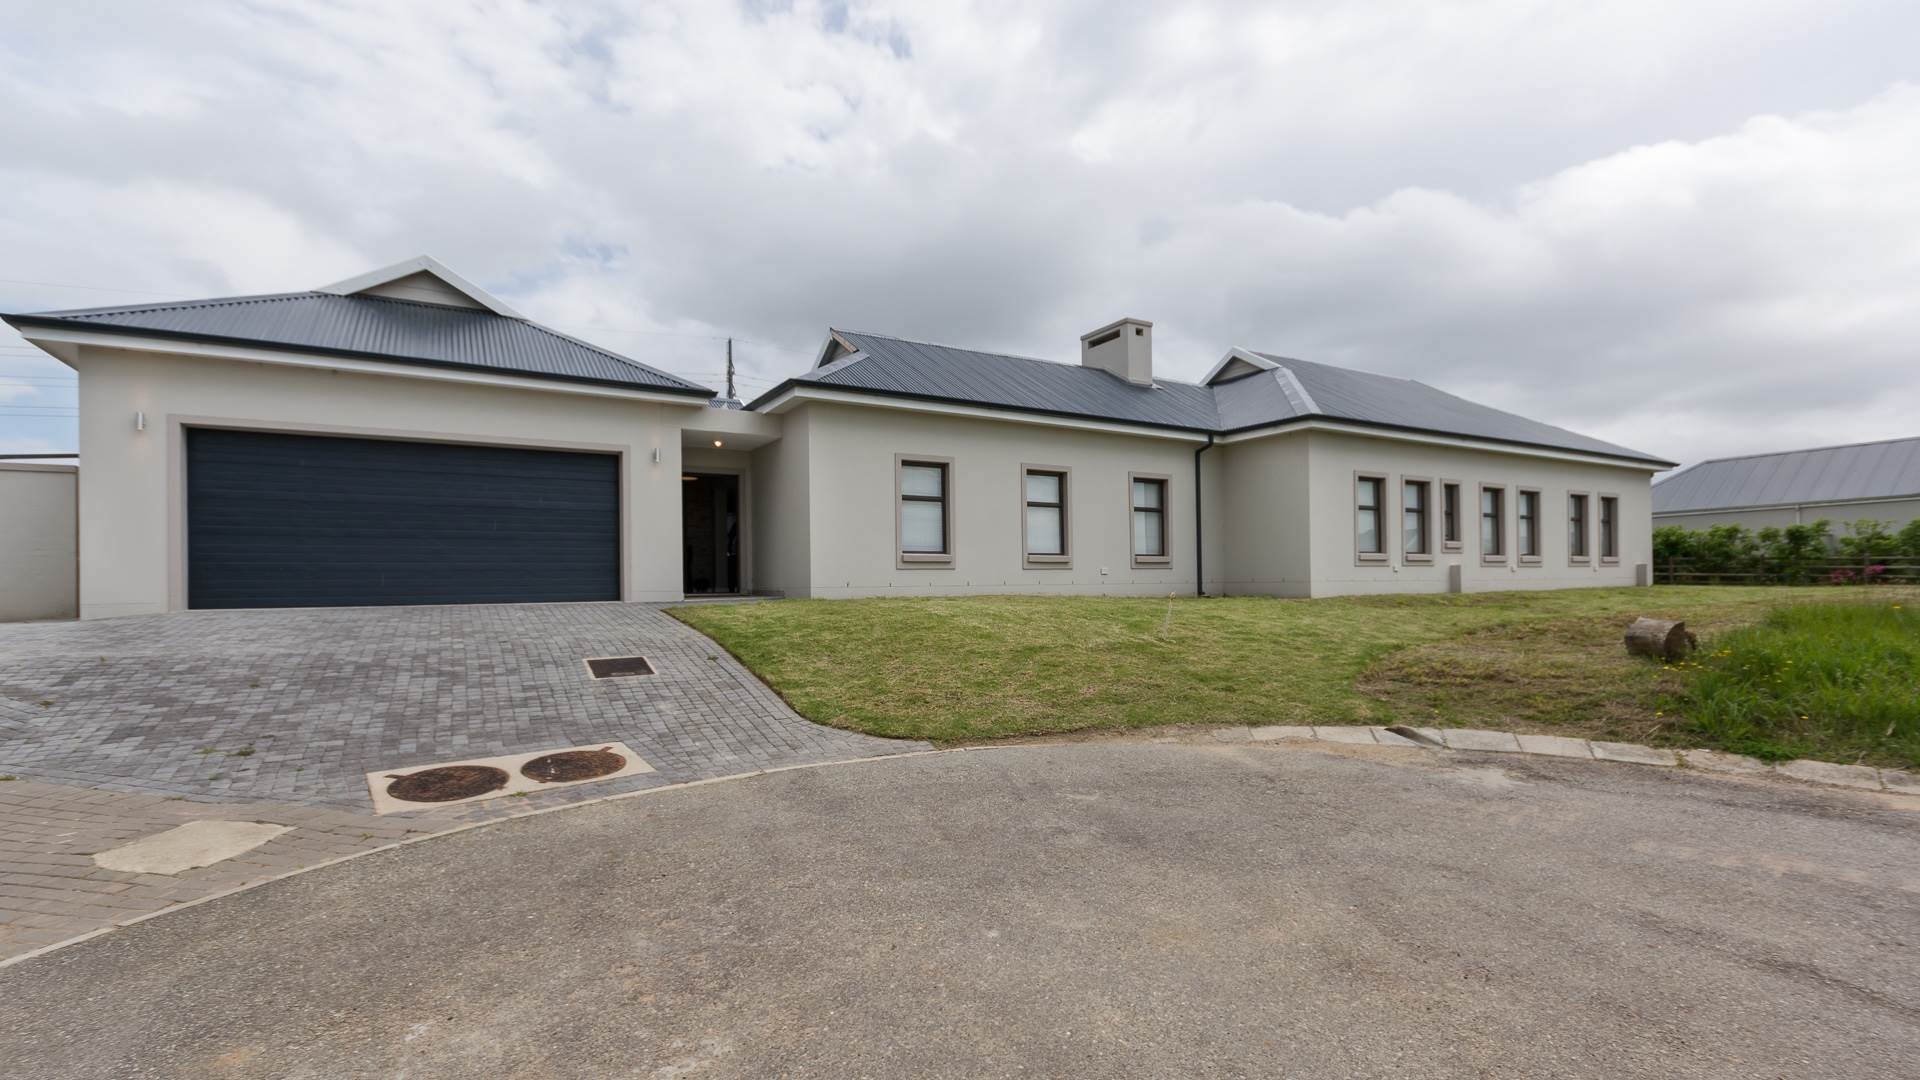 5 BedroomHouse For Sale In Kraaibosch Country Estate